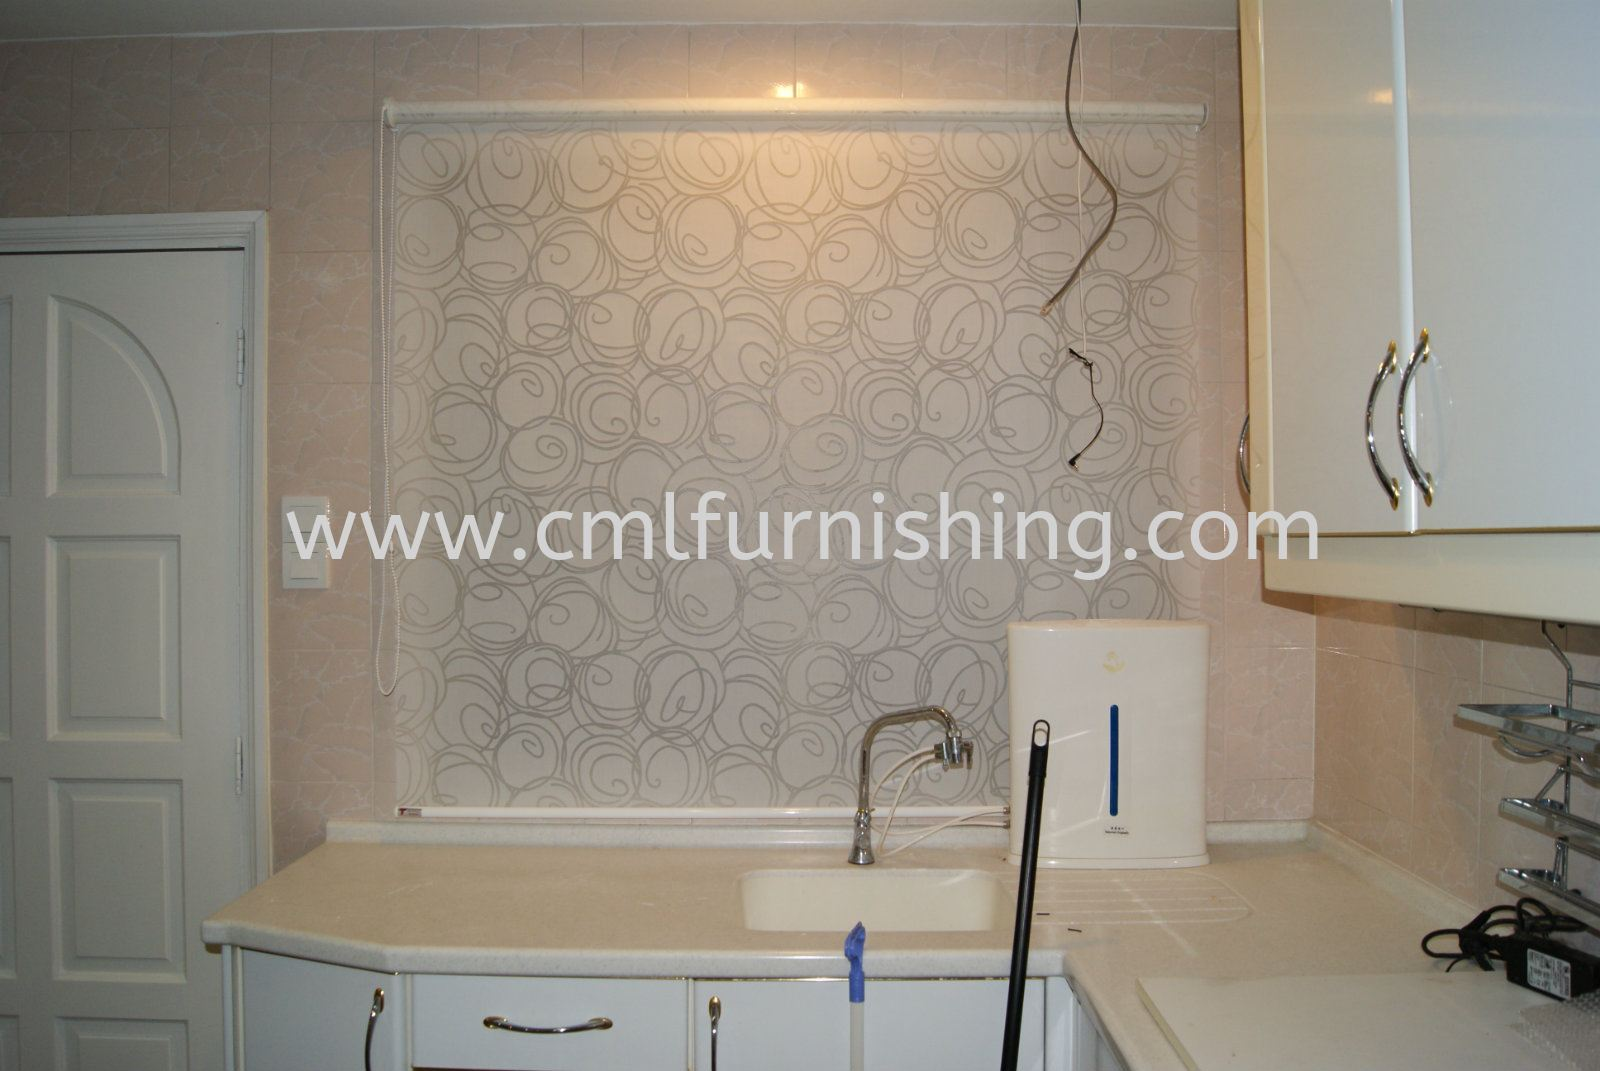 Curtain & Roller Blinds